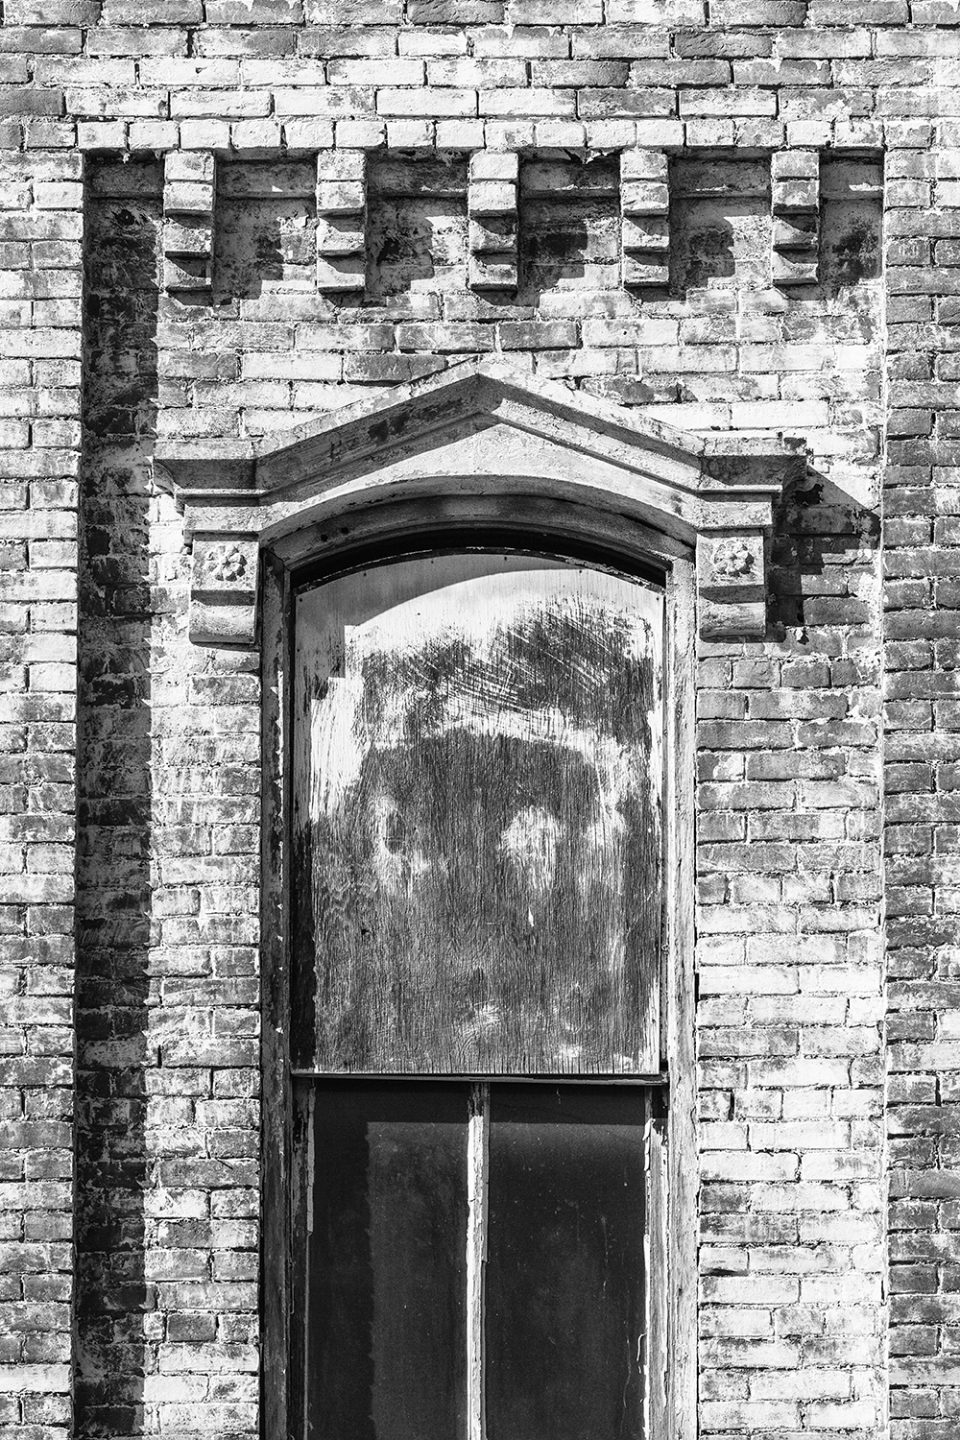 Painted bricks and a decorative hood mold on an abandoned building in Hopkinsville